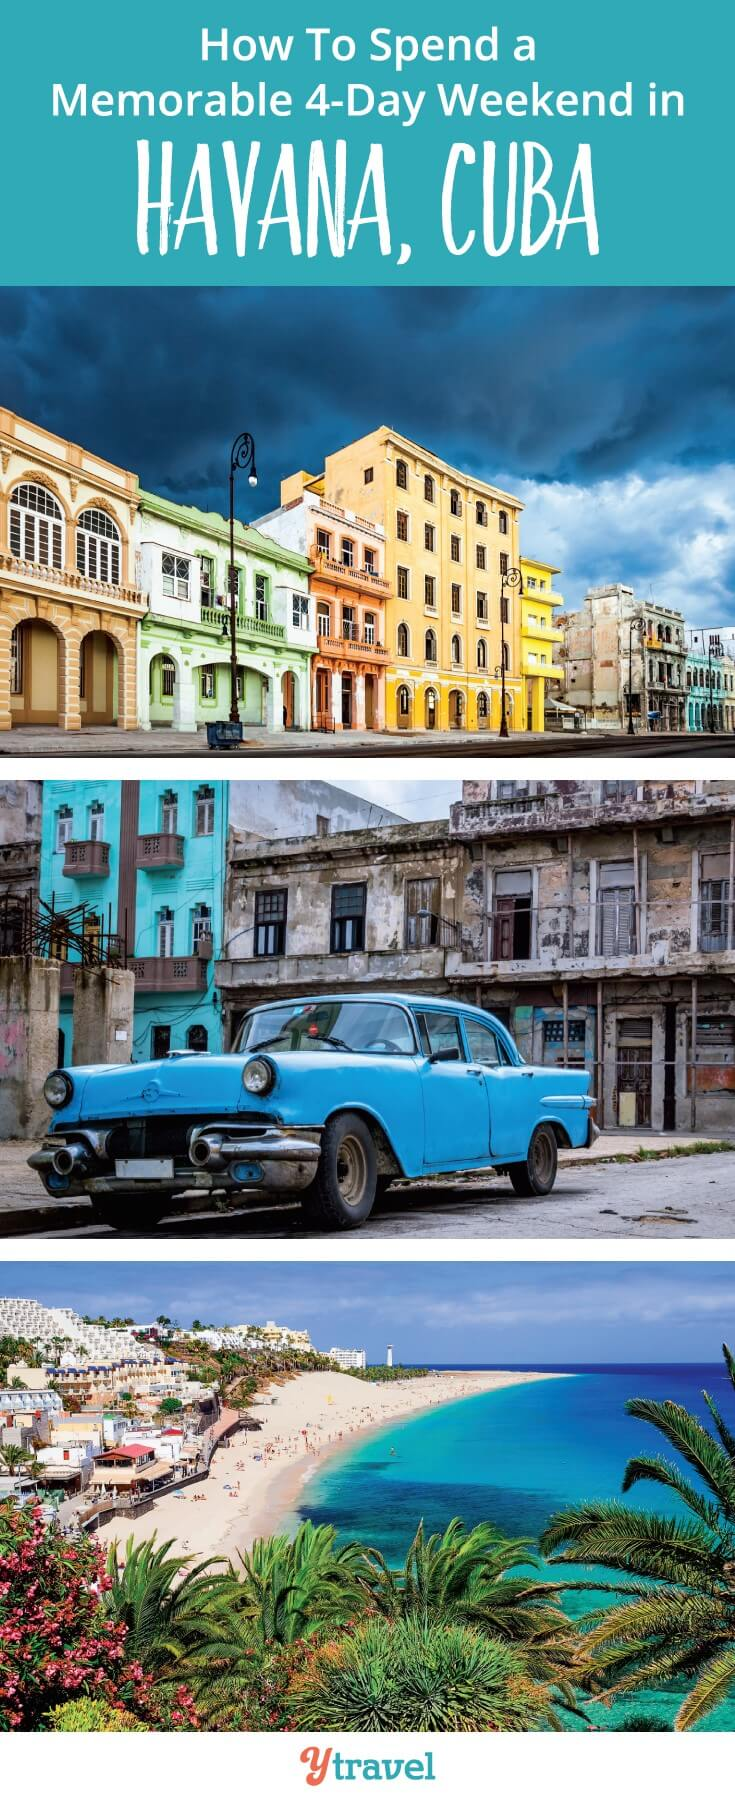 How to spend a 4 day weekend in Havana Cuba. What a great idea to visit Cuba for a weekend. It's so easy to do from the USA.. at the moment. Quick before you can no longer go!